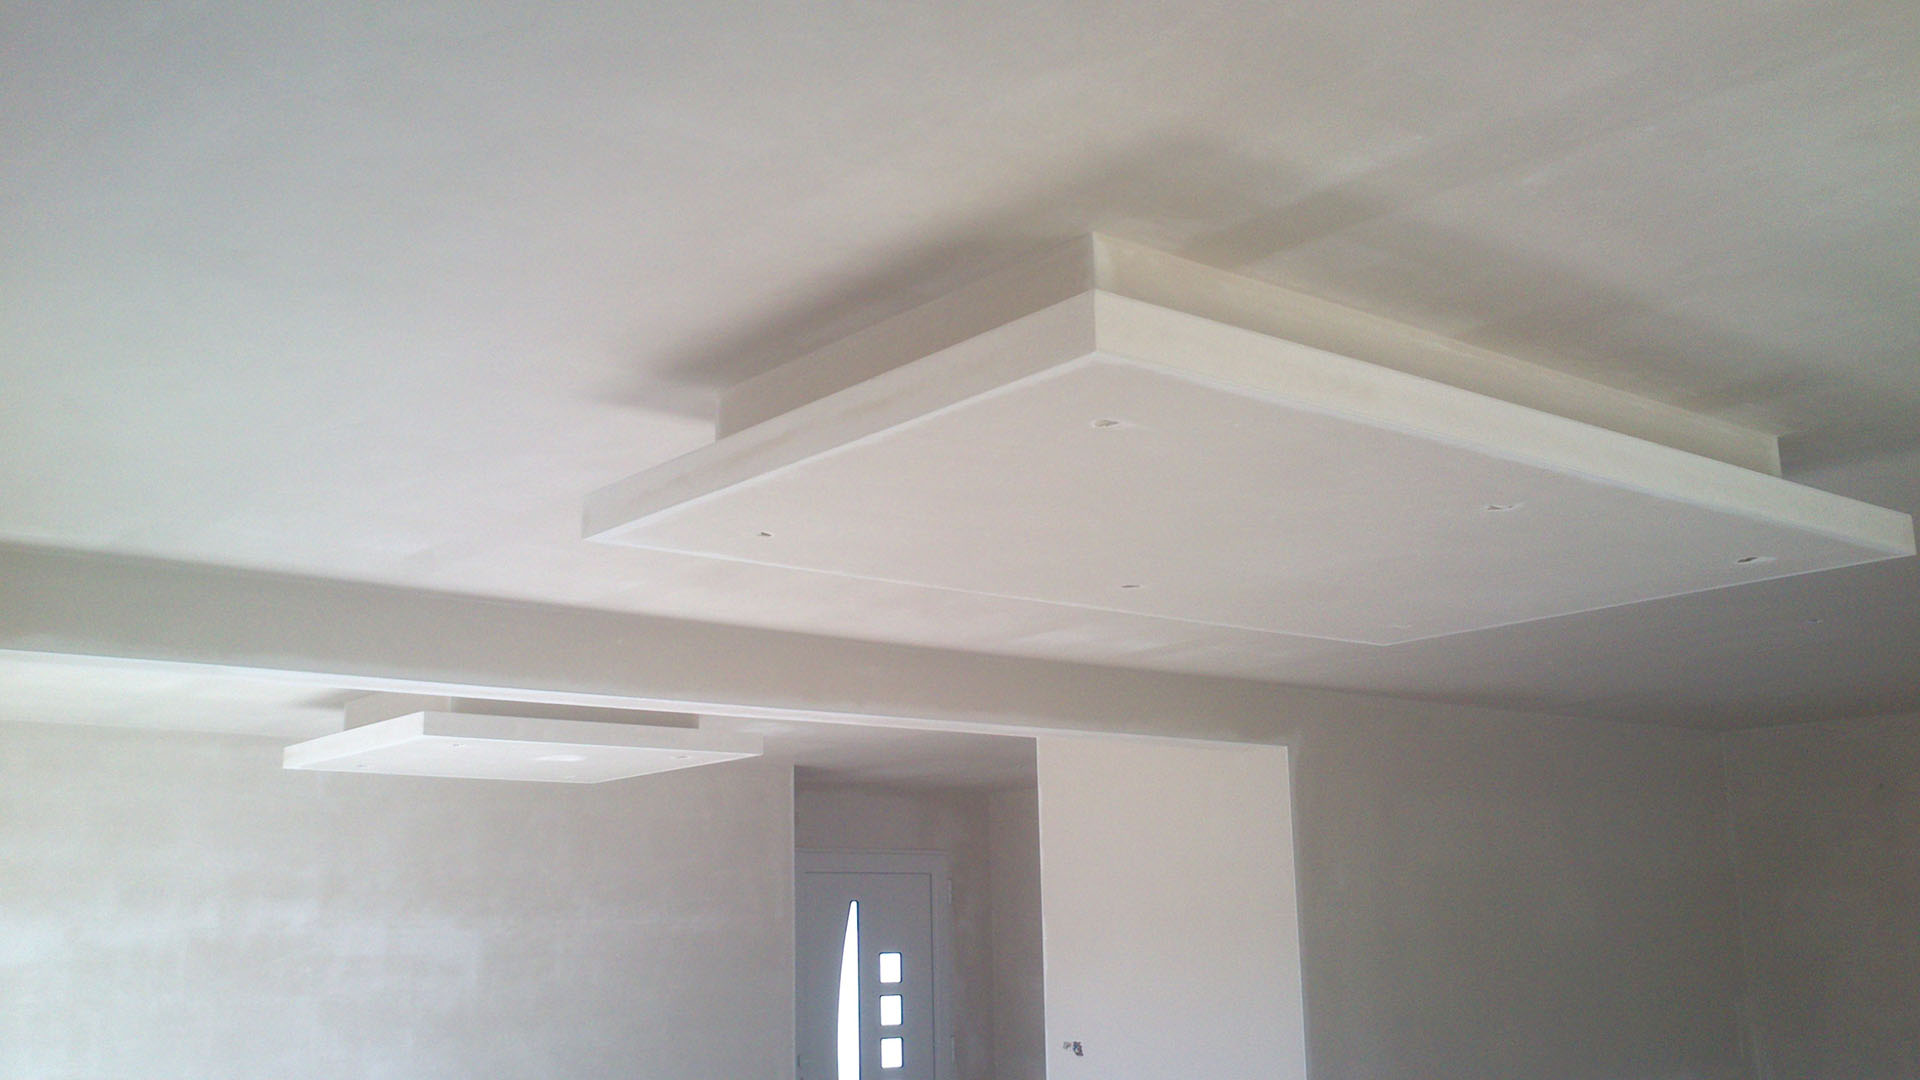 Platrier brest finist re 29 iroise platrerie for Modele staff plafond